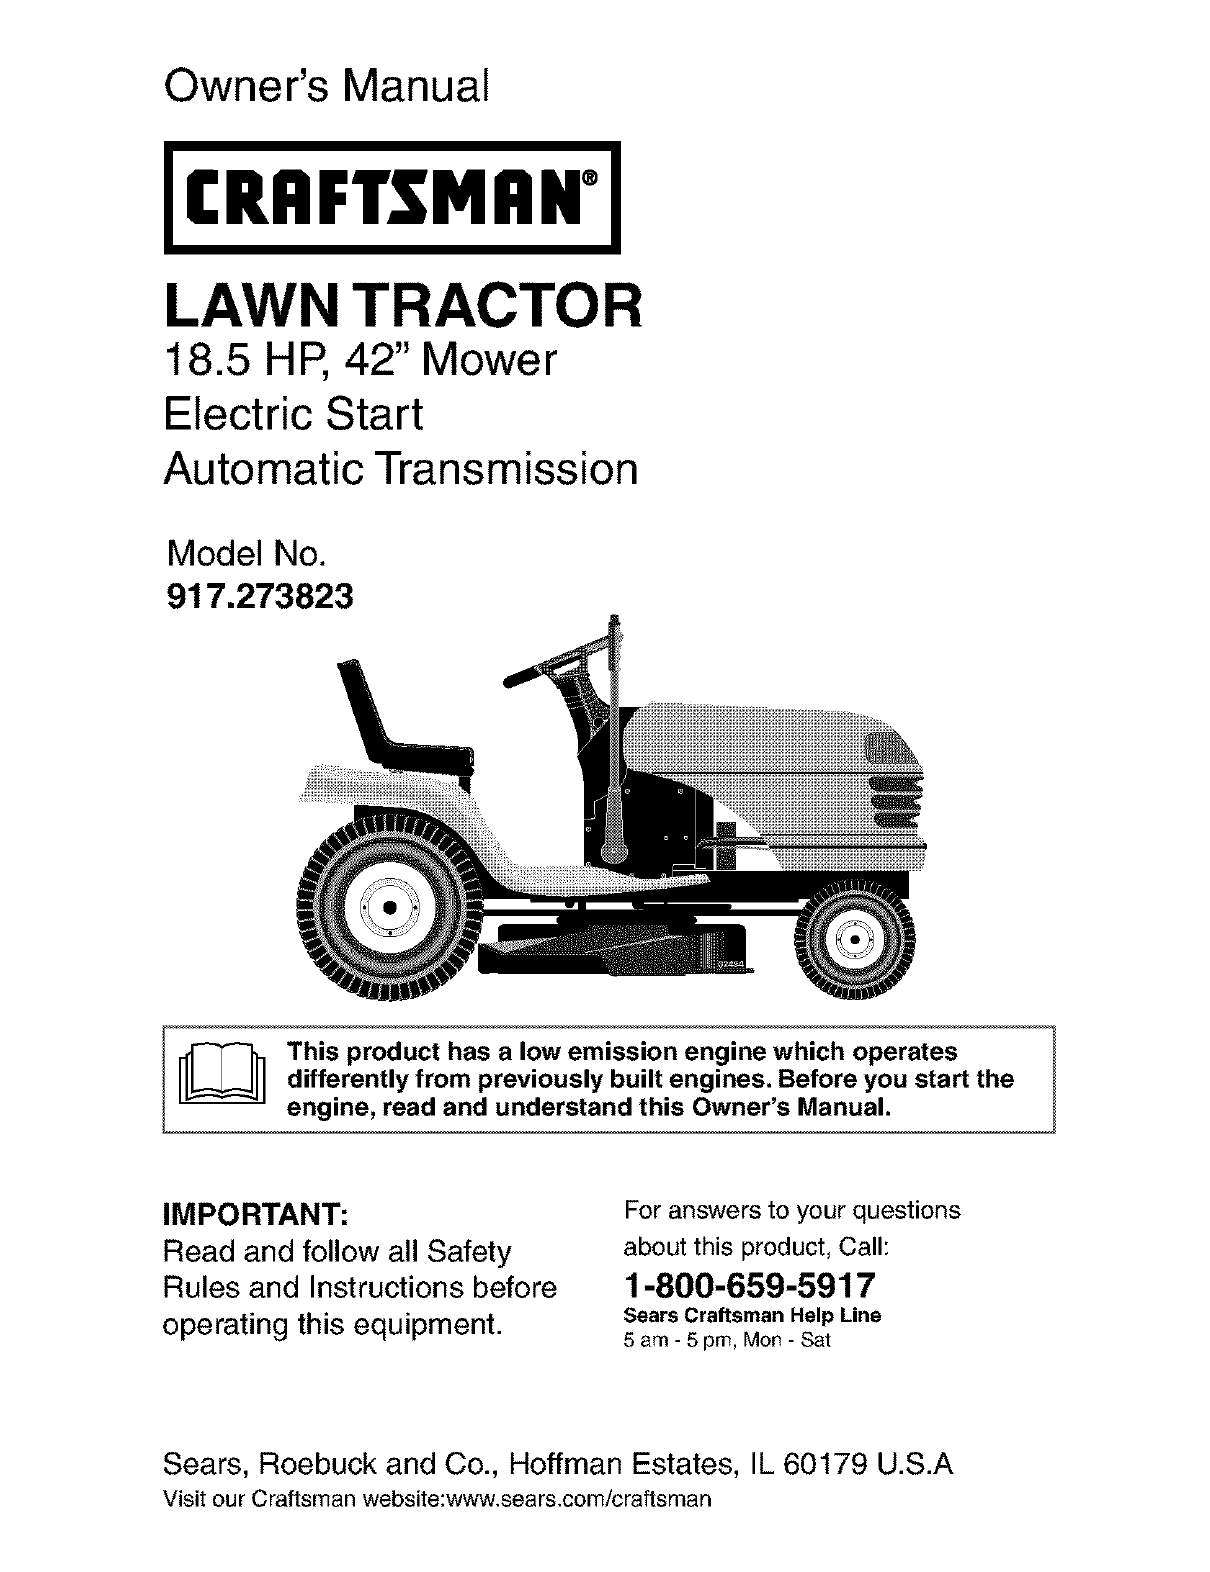 craftsman lawn mower 917 273823 user guide manualsonline com rh phone manualsonline com Craftsman Repair Manual Craftsman 5 22 Snowblower Parts